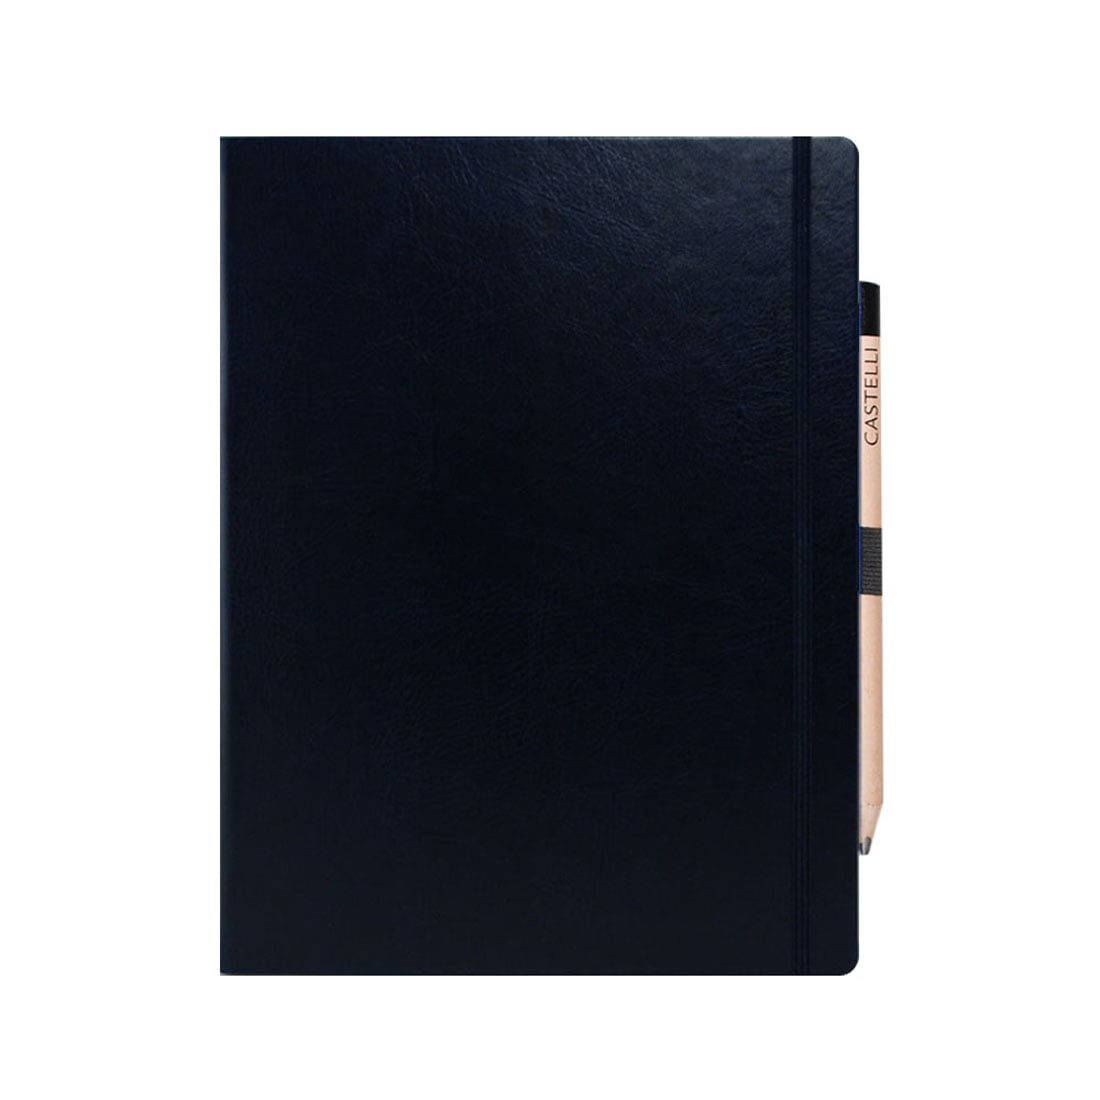 Soft feel large ruled notebook with elasticated closure band, retro style pencil included